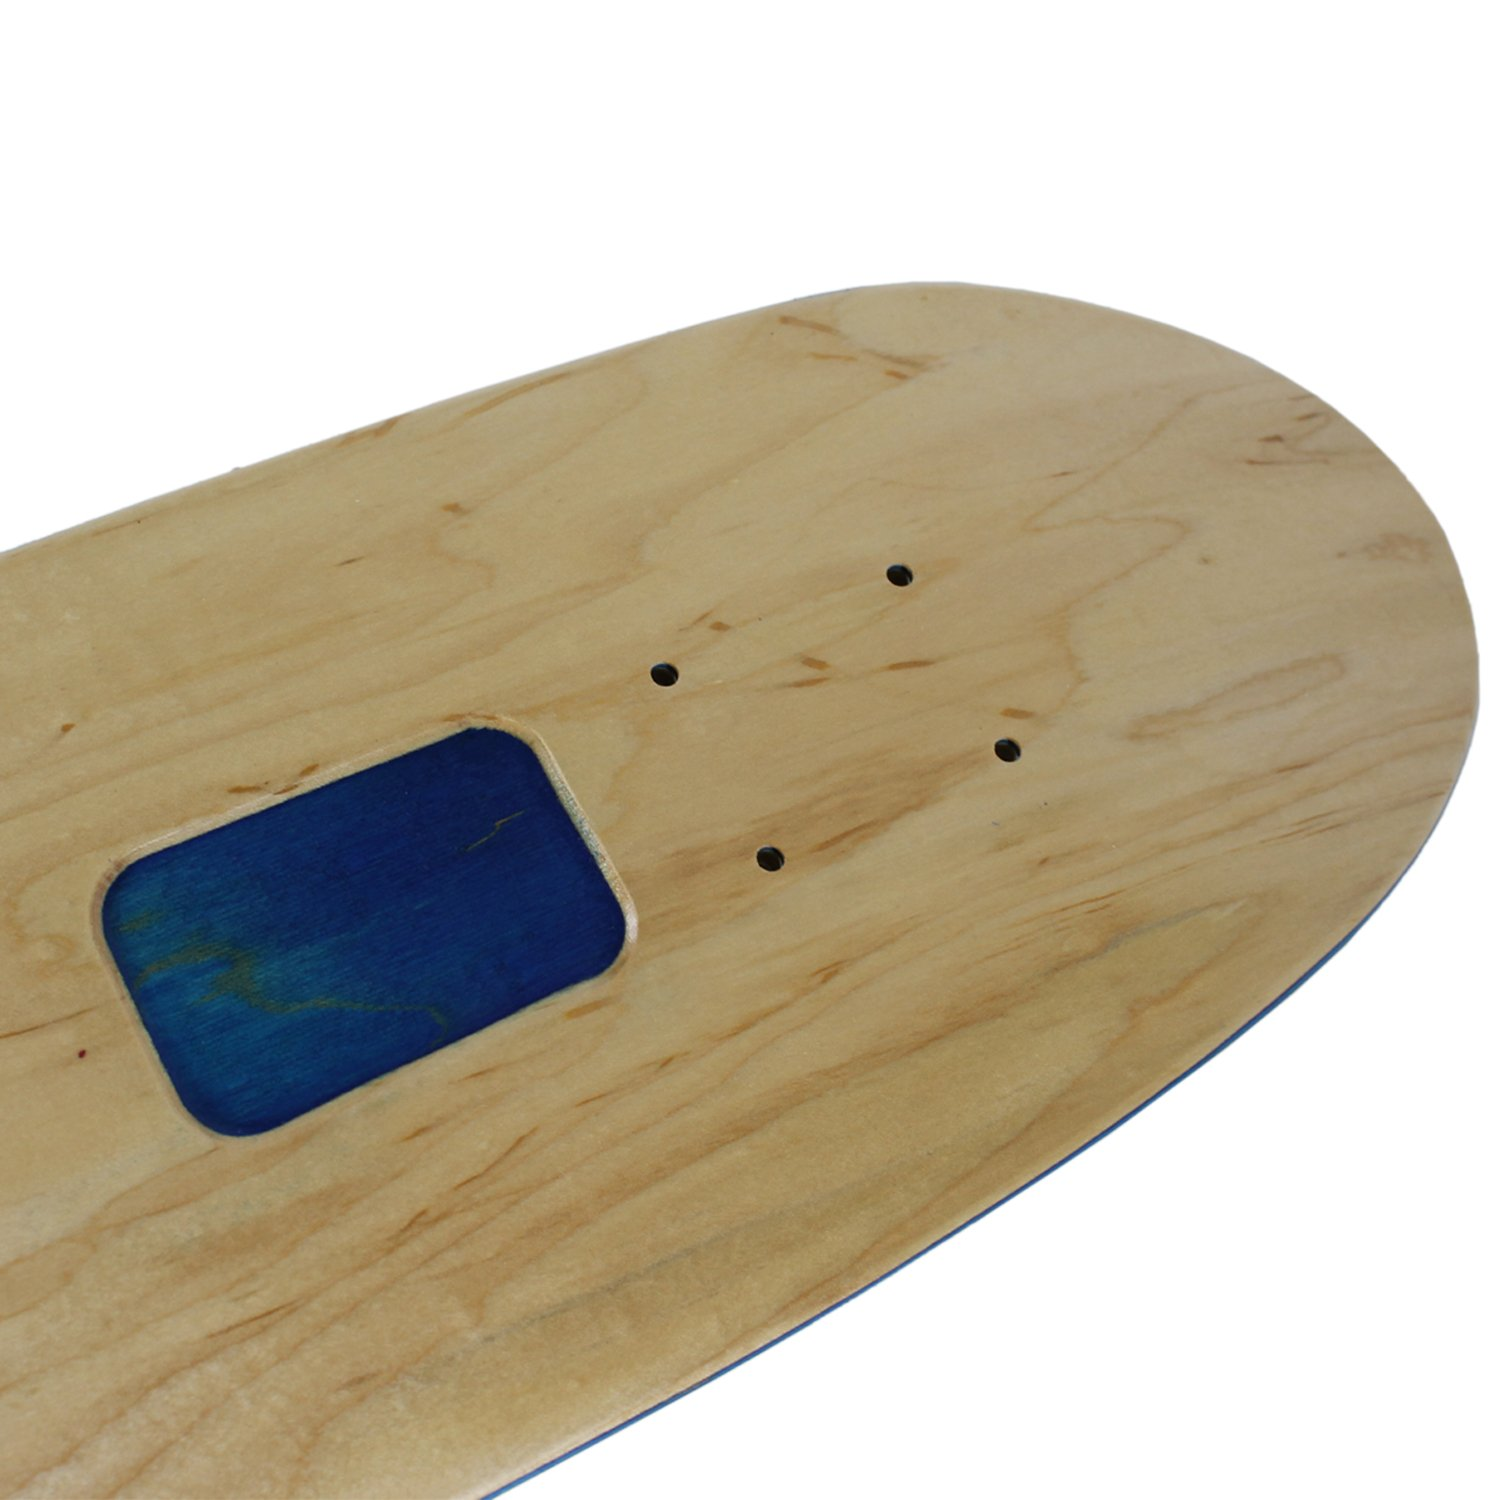 Moose Rolling Tray Skateboard Cruiser Deck Natural//Blue 7.75 x 30